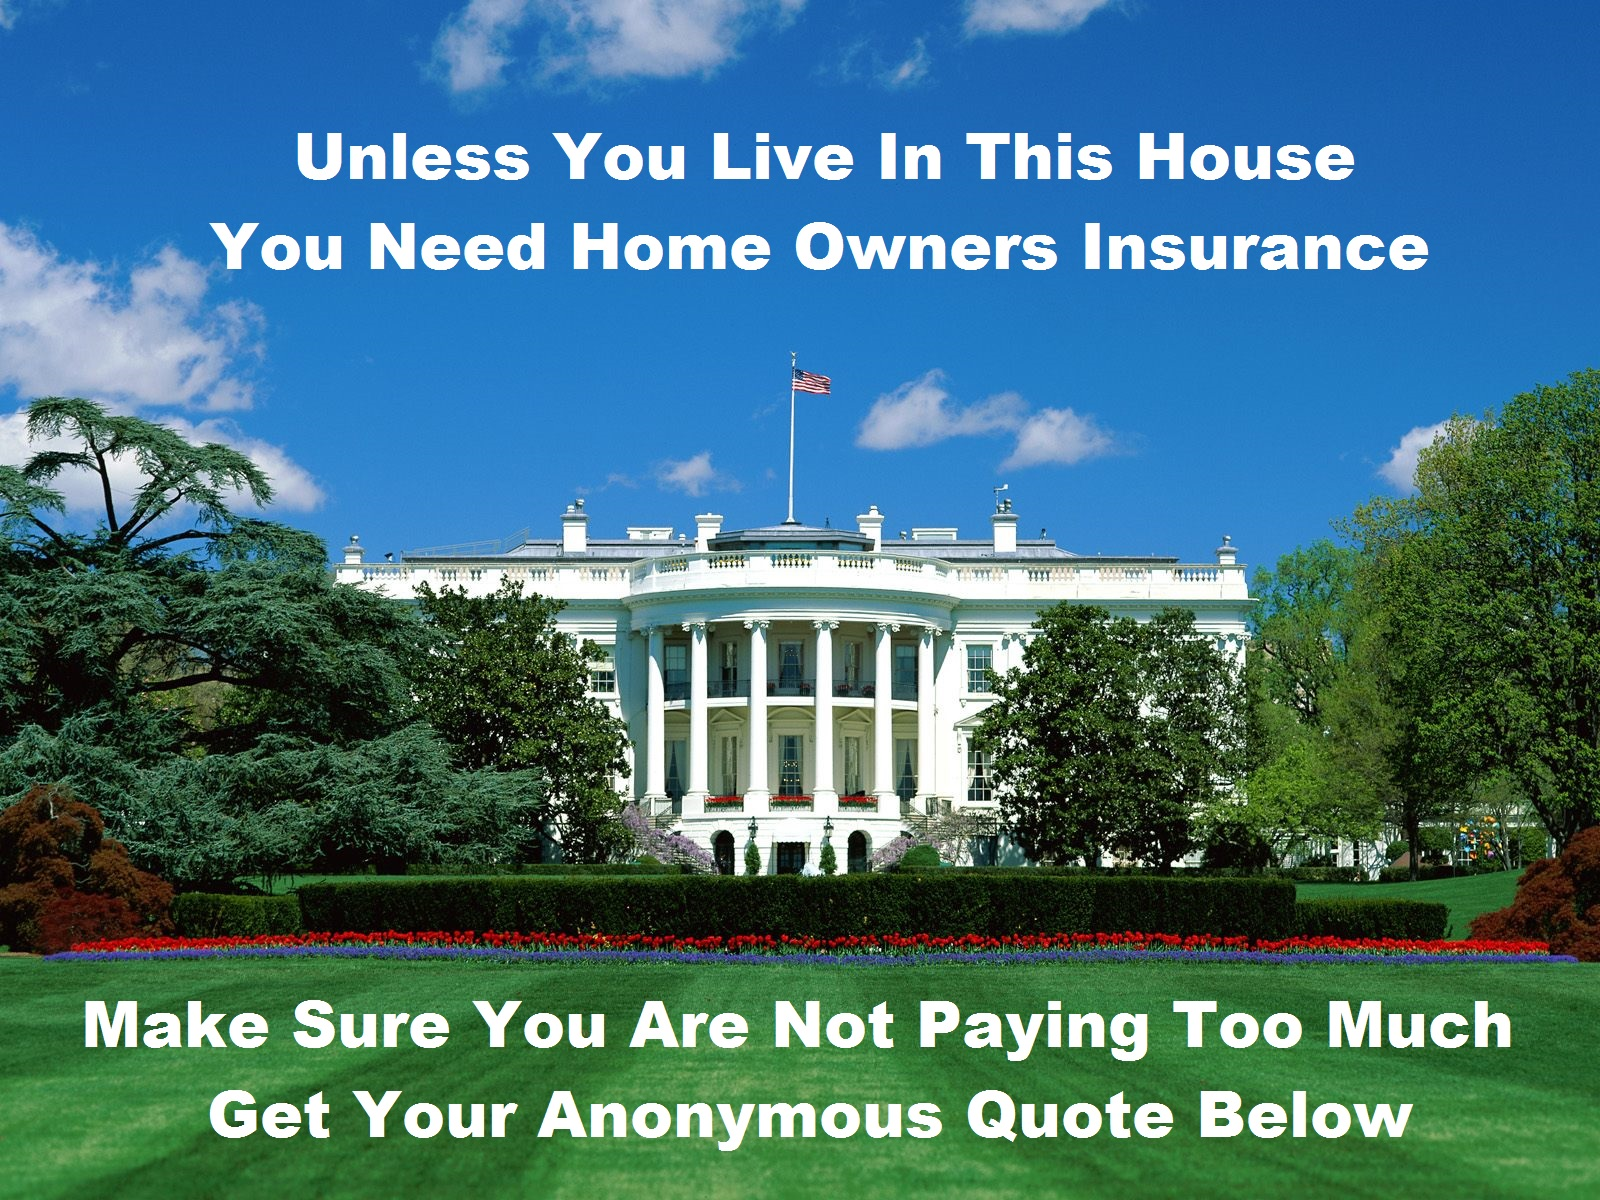 Insurance basics for new homeowners - Car, Life, Home & Health